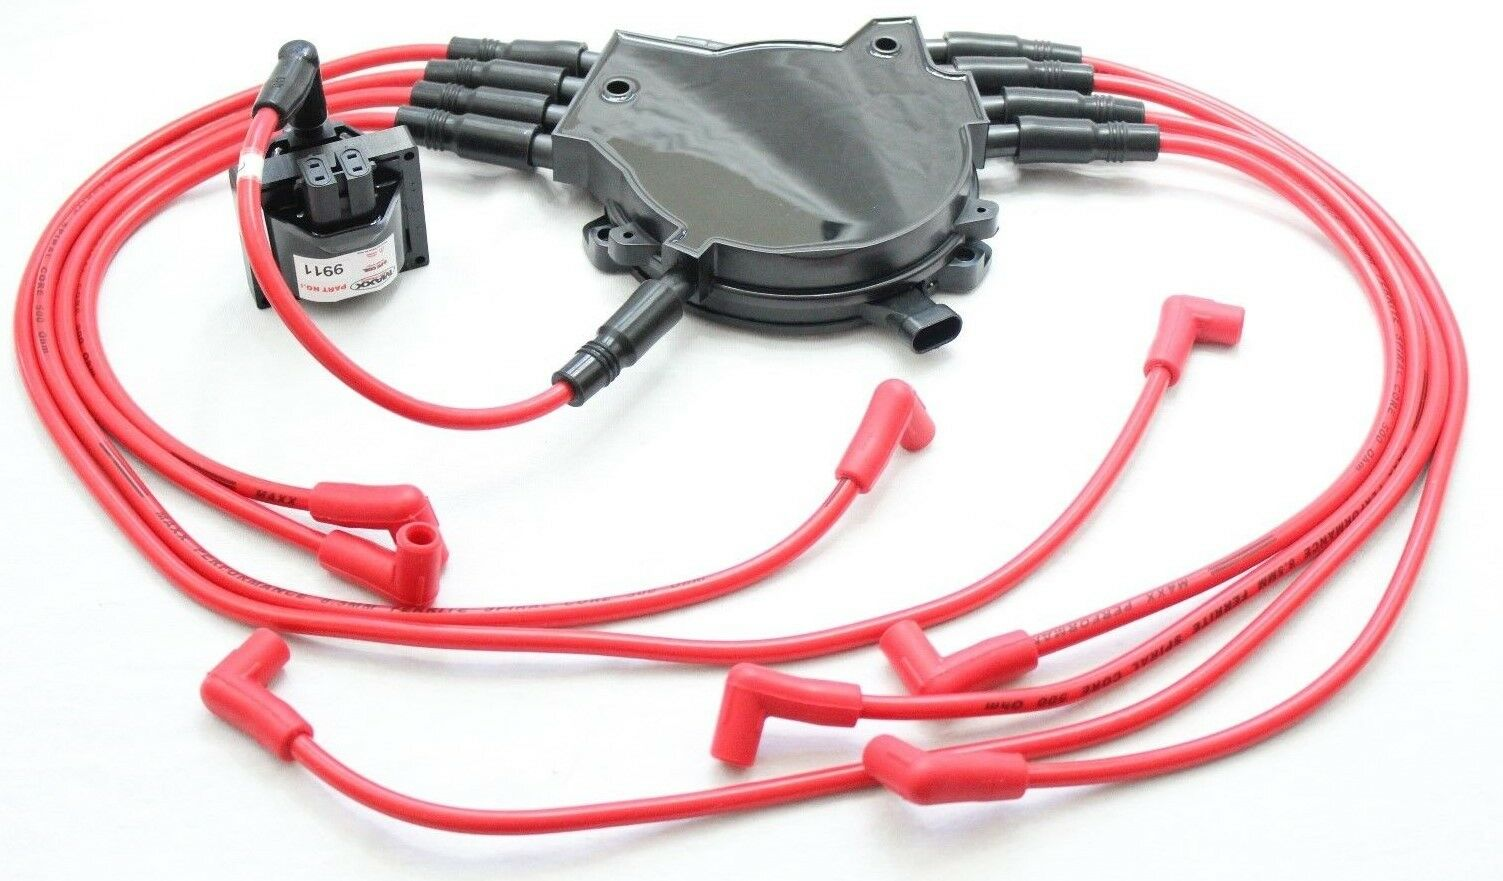 85mm Spark Plug Wires Optispark Ii Distributor Cap Coil 95 Camaro 96 Lt1 Wiring Harness Location 1 Of 4only 5 Available